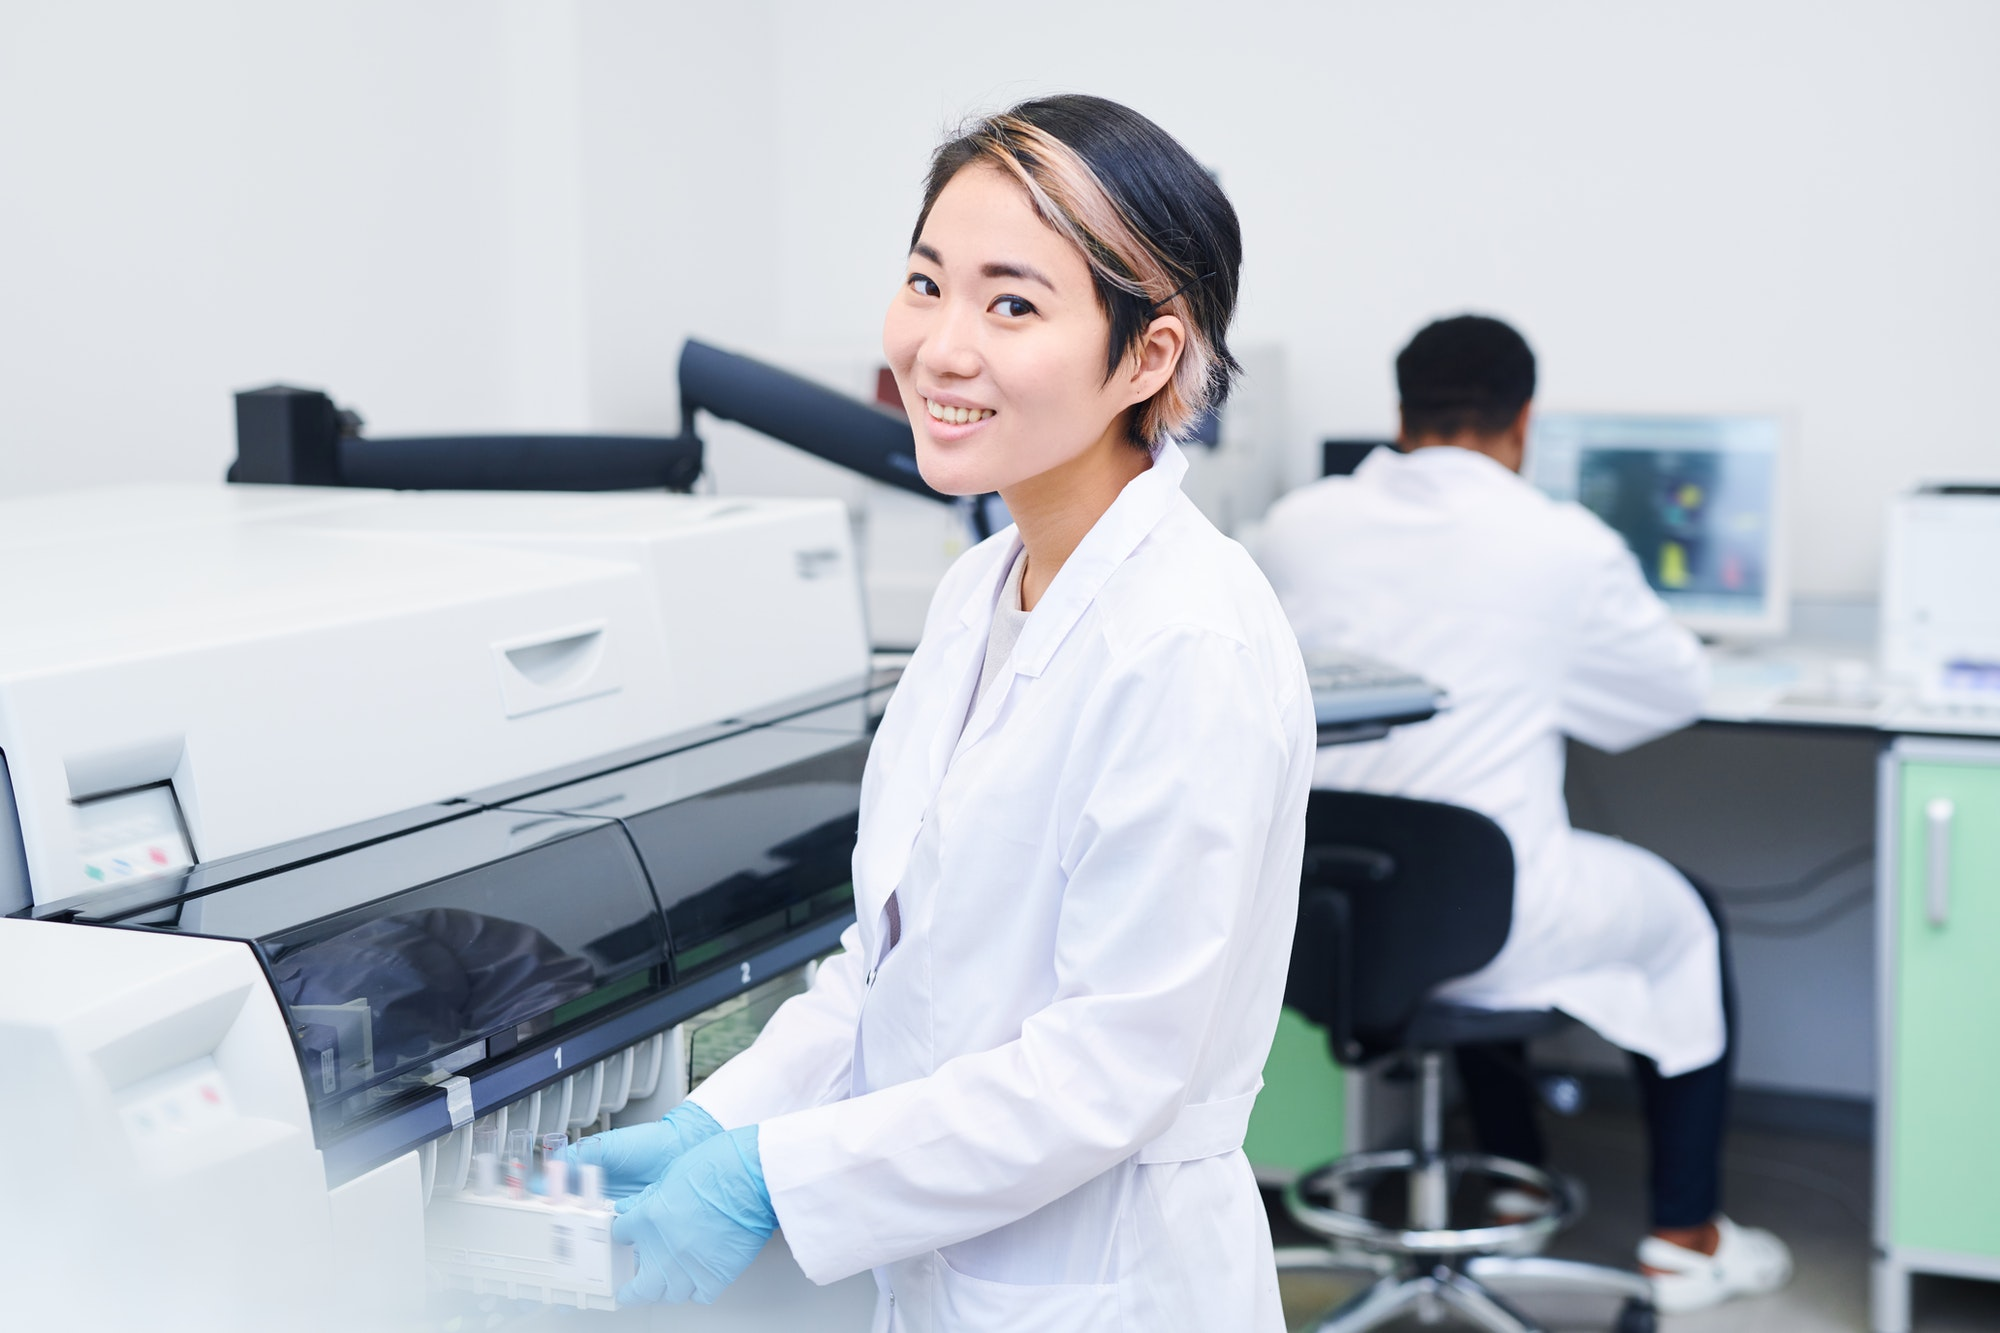 Smiling young laboratory worker